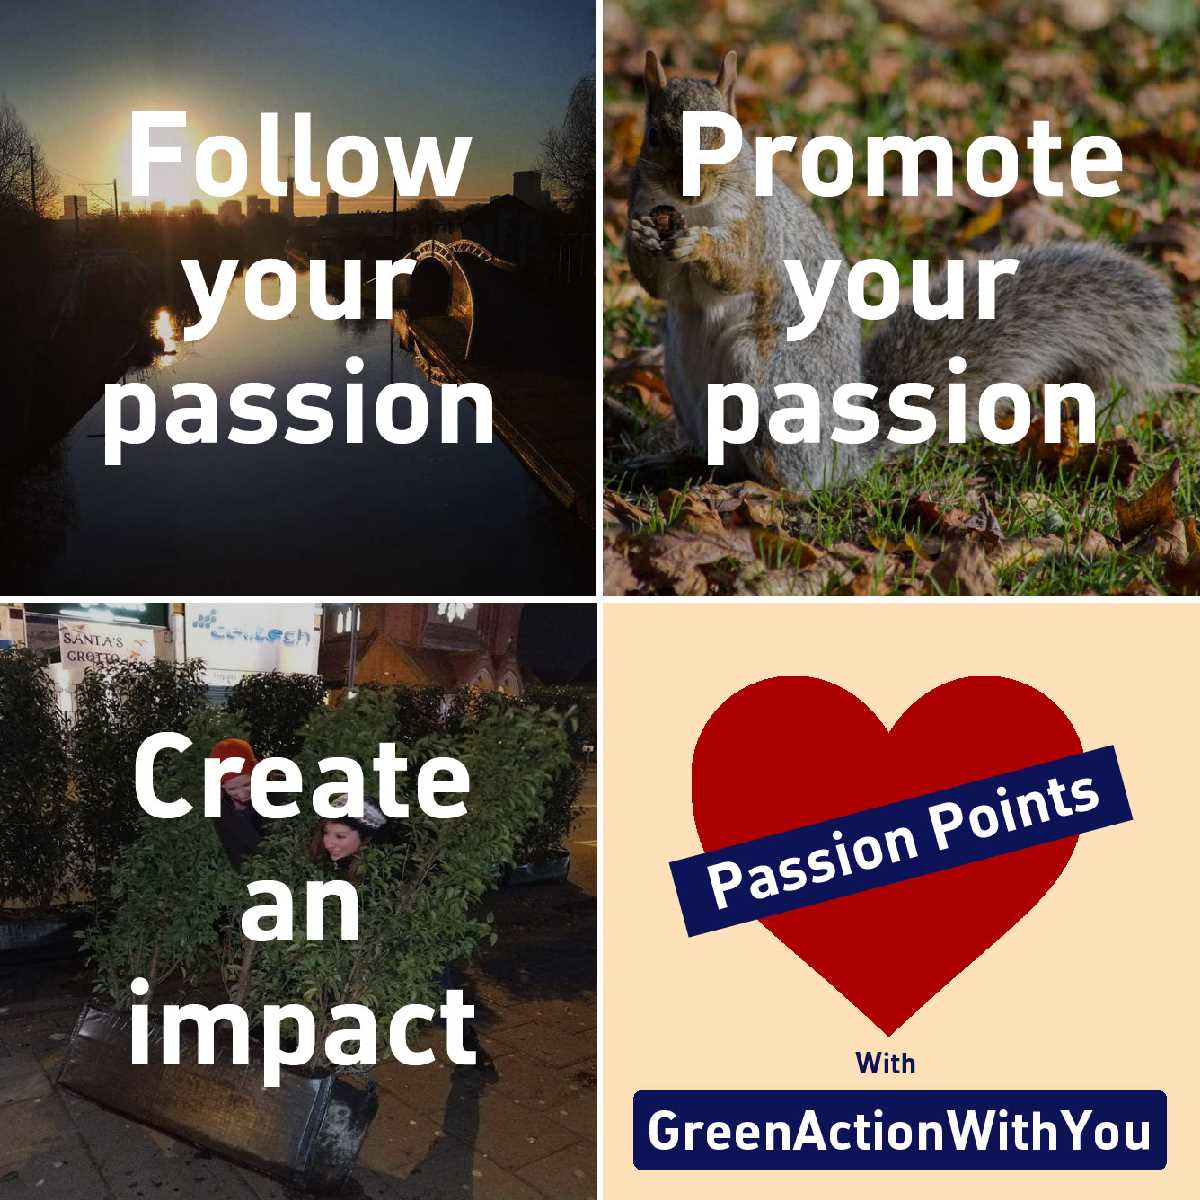 GreenActionWithYou+-+we%27re+all+about+supporting+people+who+want+to+make+a+difference!